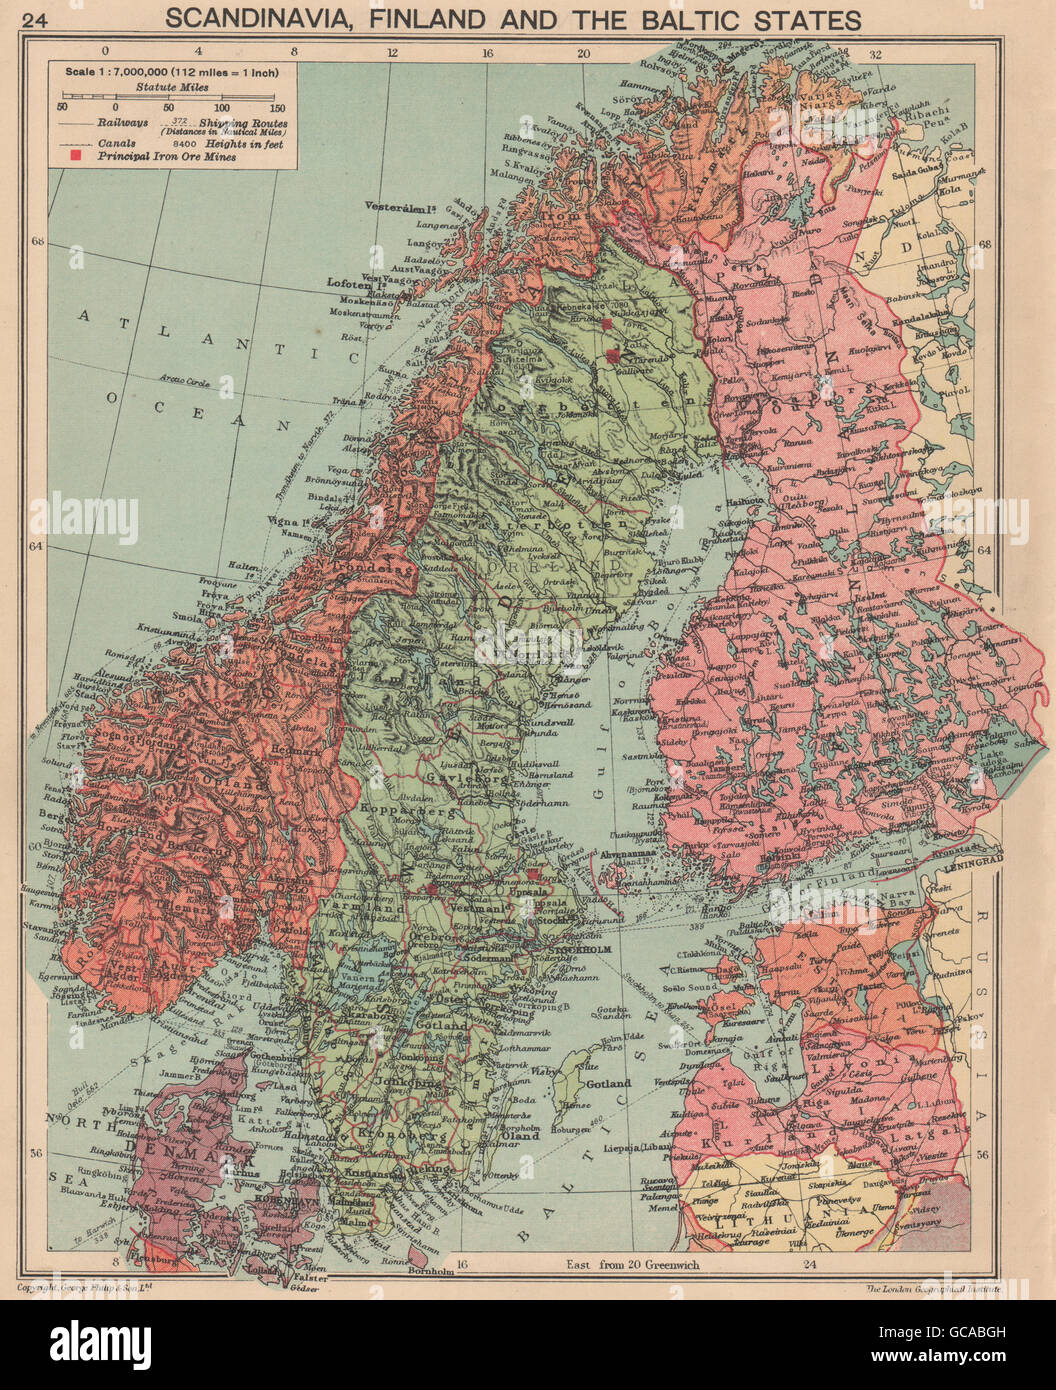 WORLD WAR TWO. Russo-Finland borders March 1940 post Winter War. Hango, 1940 map - Stock Image